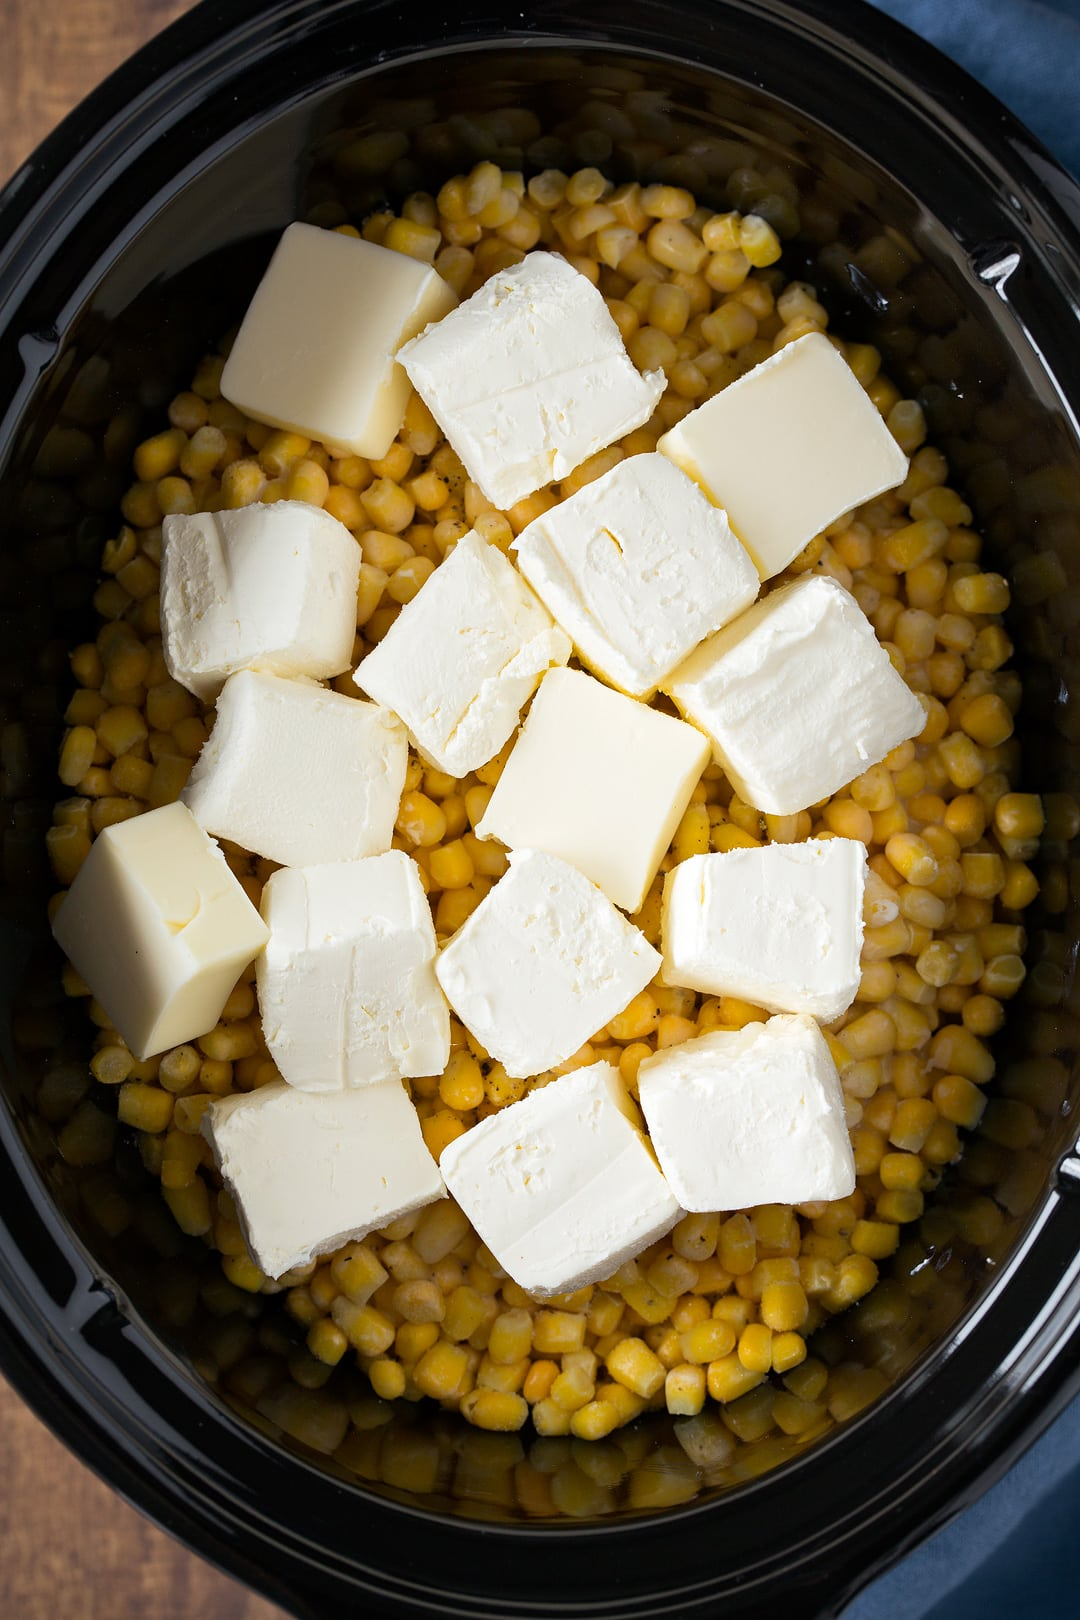 Creamed Corn in a slow cooker. A layer of corn is dotted with cubes of cream cheese before cooking.